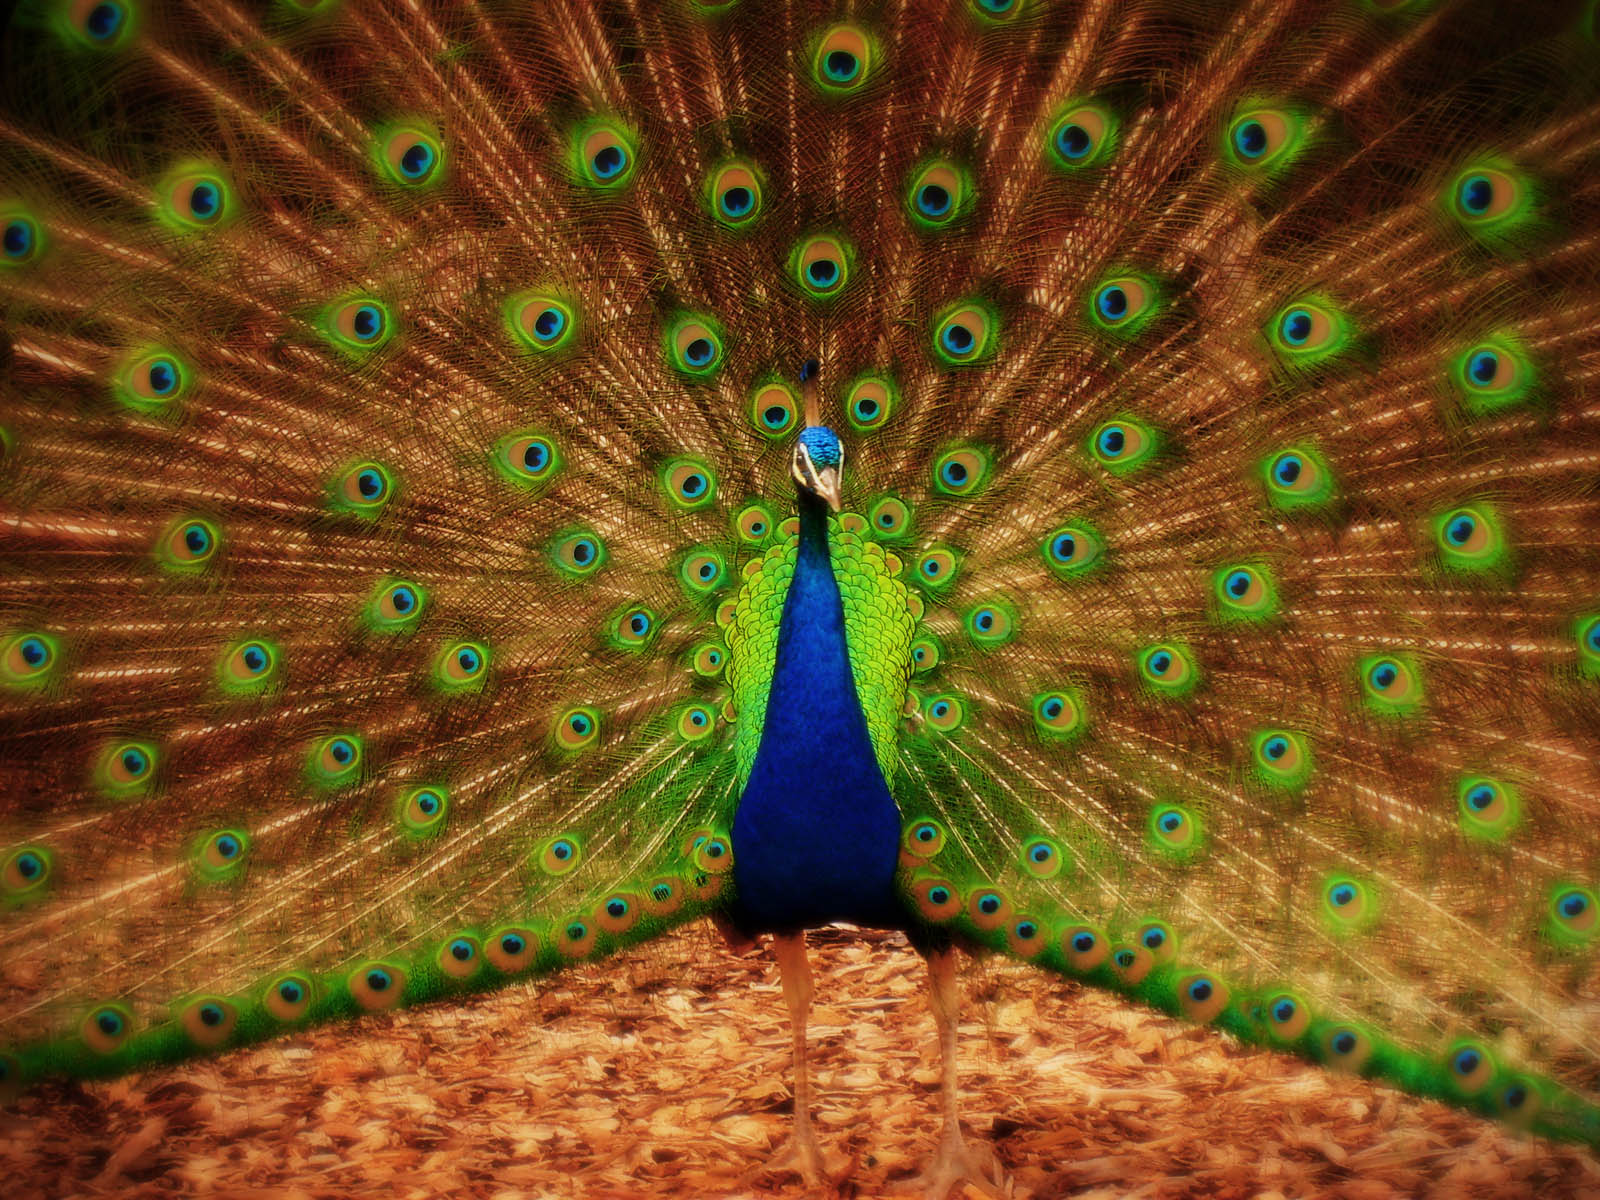 wallpapers: Peacock Wallpapers